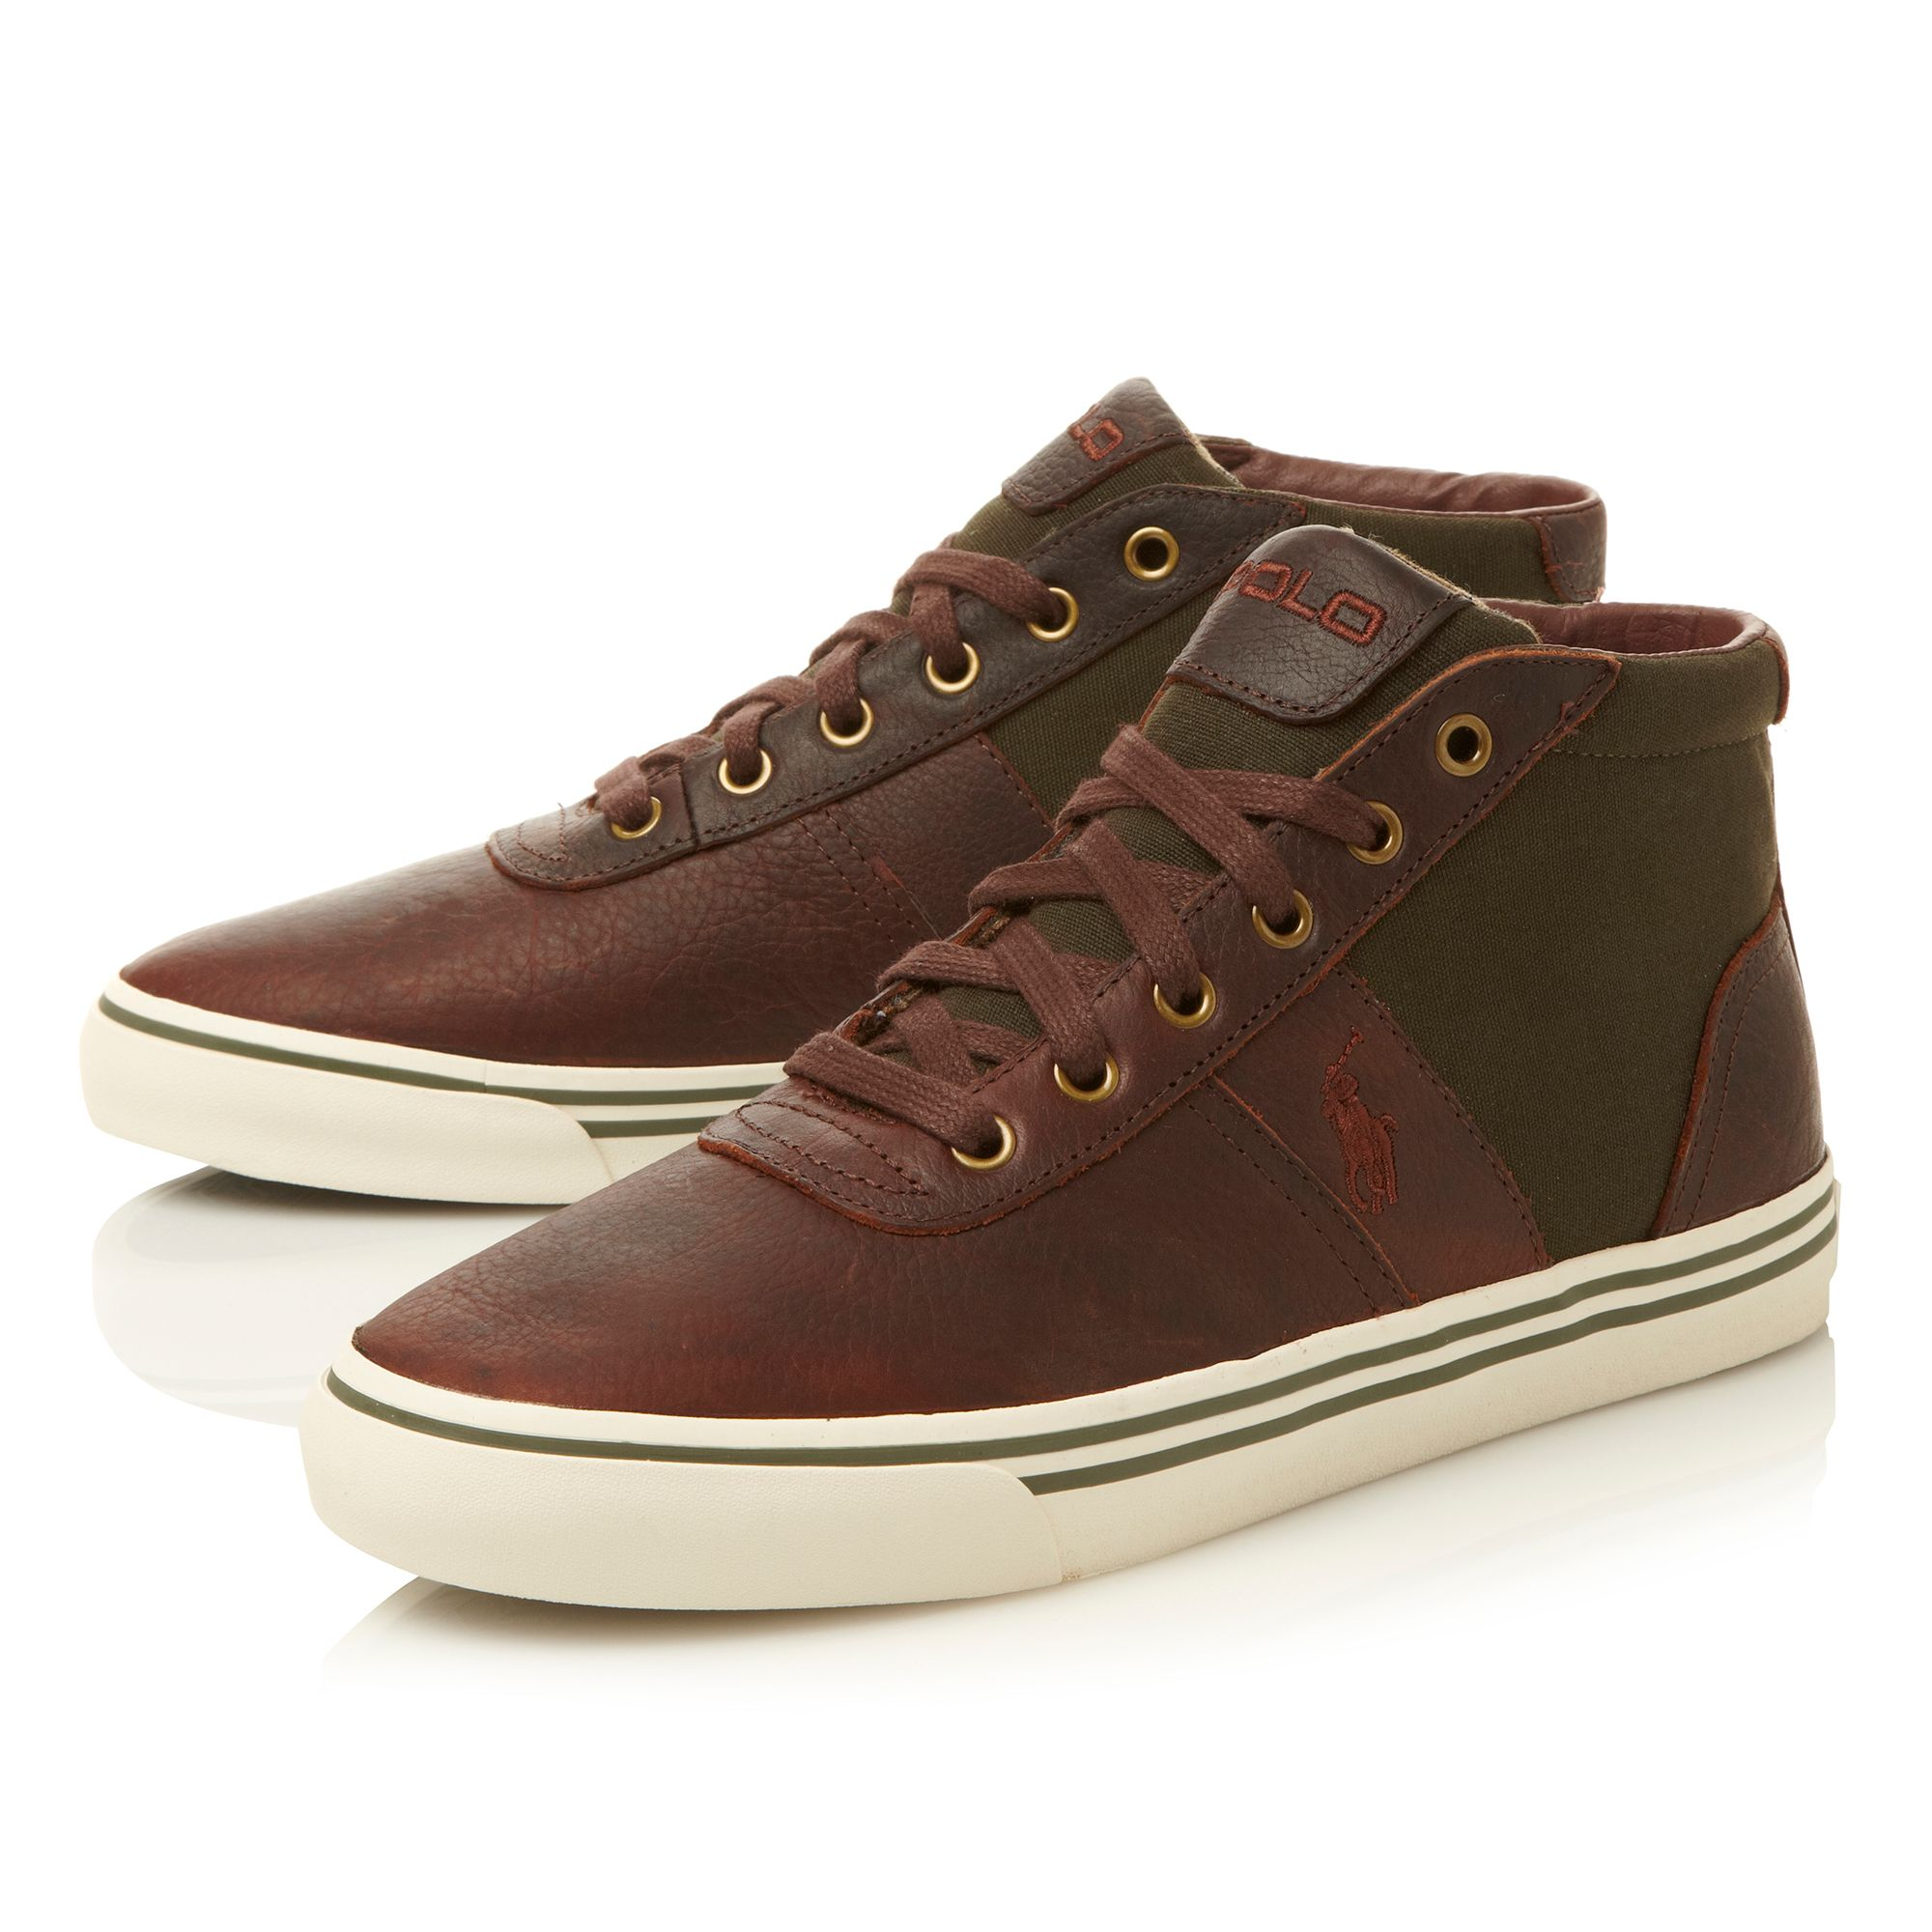 Hanford mid vulcanised leather hi top